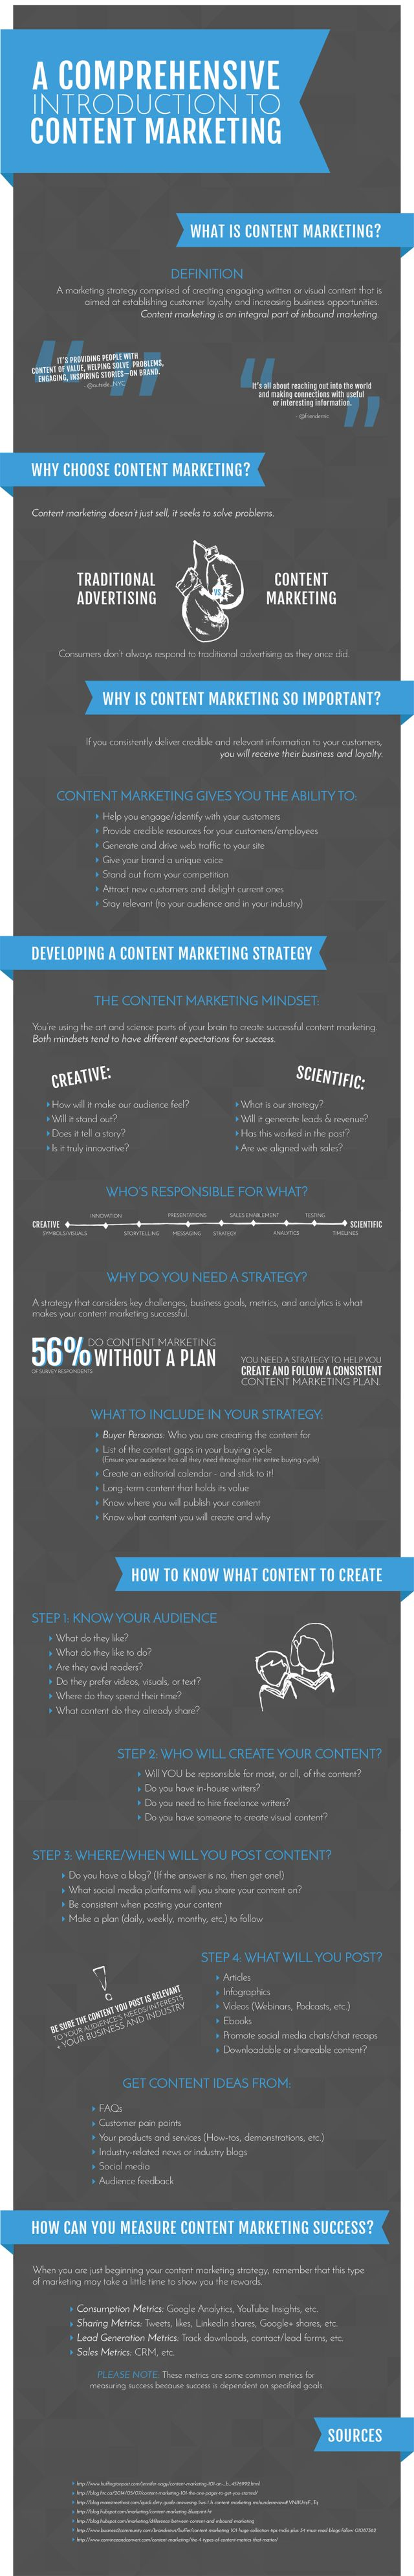 Content Marketing Guide - How To Create The Best Strategy